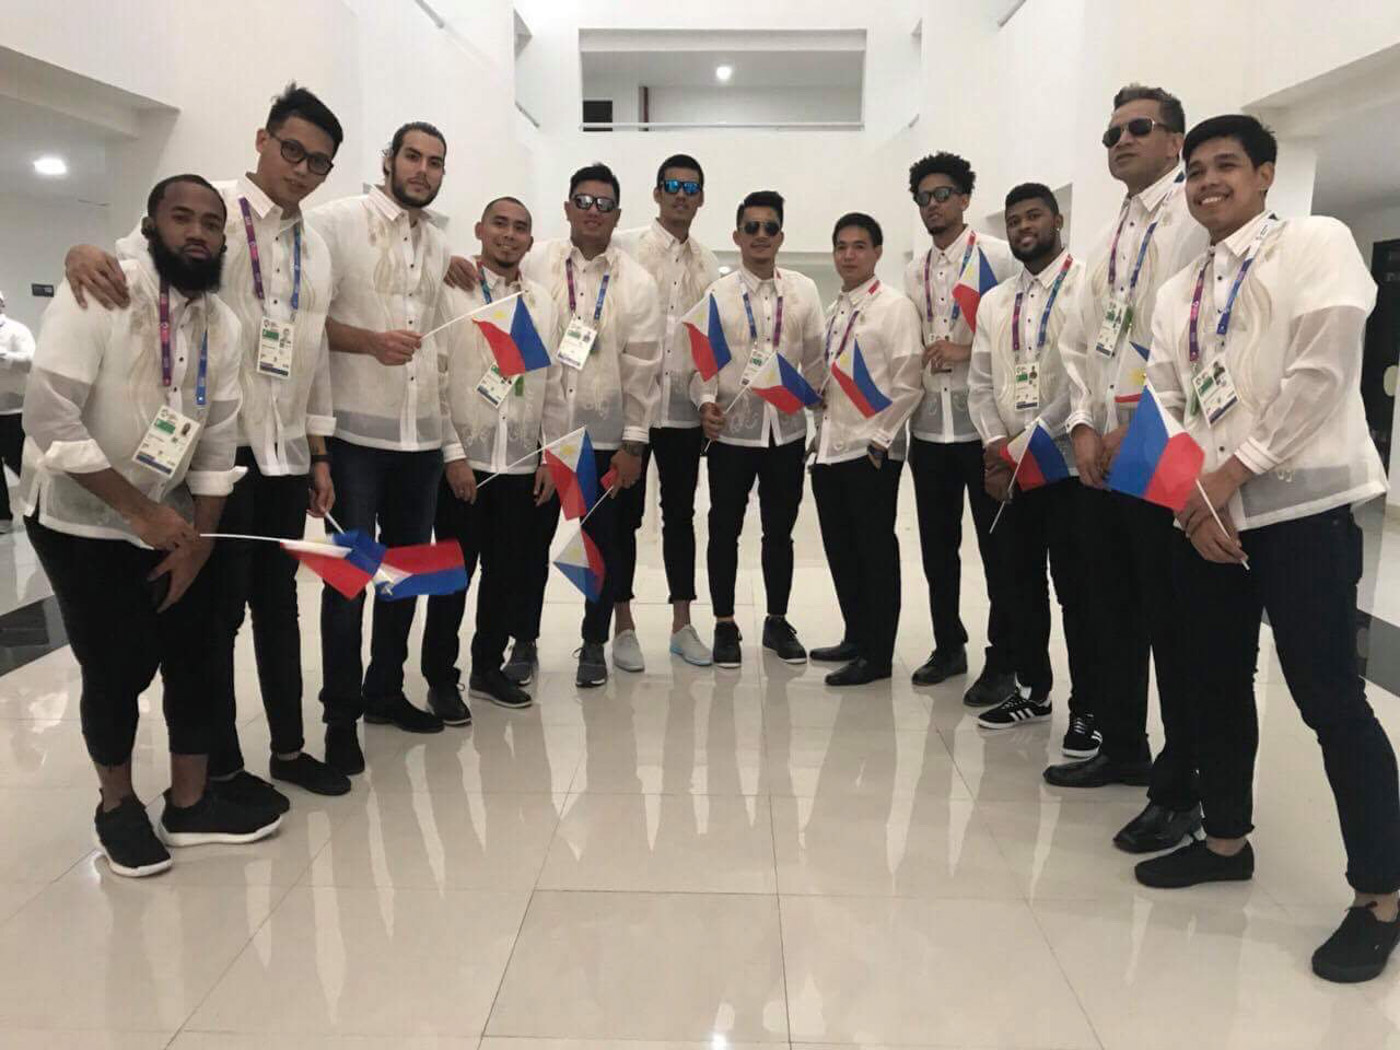 ALL SET. The team will join the rest of the 272-strong Philippine contingent in the opening march.